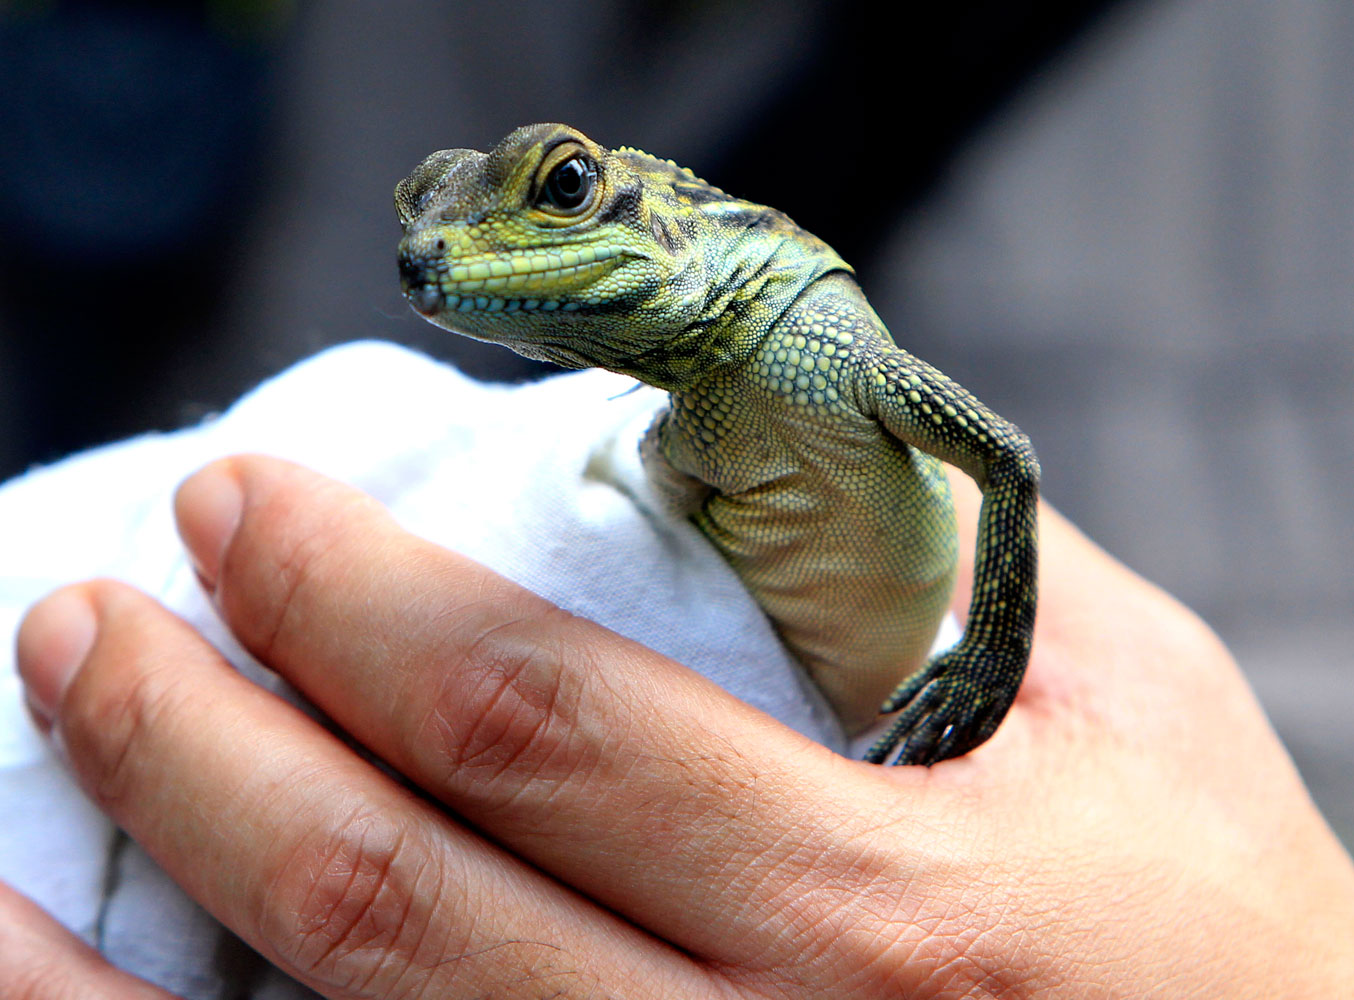 An employee of Protected Areas and Wildlife Bureau holds one of five sailfin lizards that were smuggled into Hong Kong and brought back to the Philippines on June 8, 2012.  The lizards were smuggled into Hong Kong along with 18 Philippine pond turtles and 13 Asian box turtles.